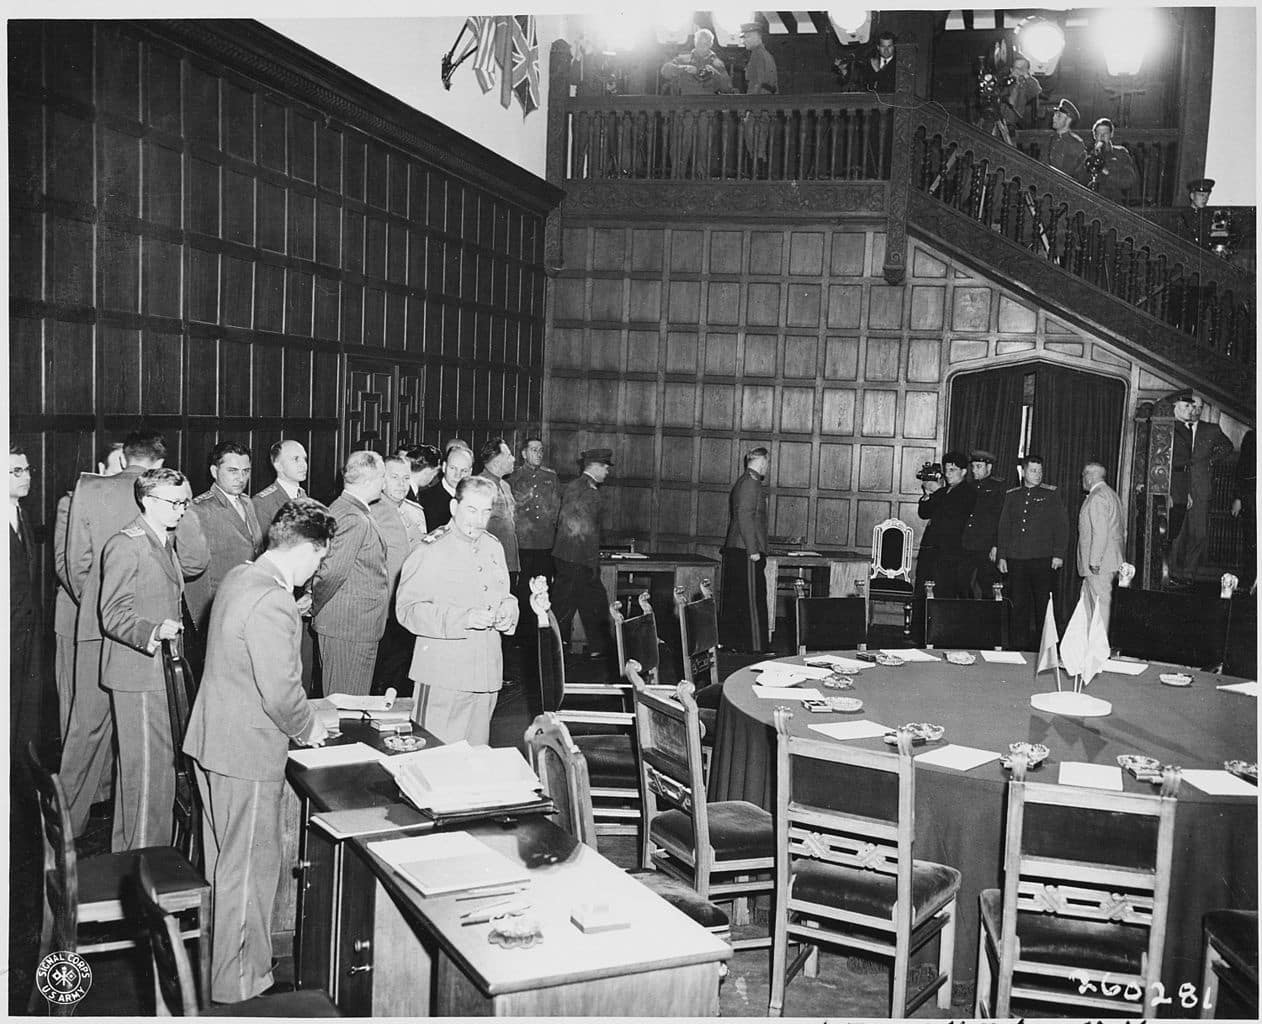 The Potsdam Conference - July 20th 1945 - Stalin and Molotov gather for the fourth plenary session of the Potsdam Conference on July 20th 1945